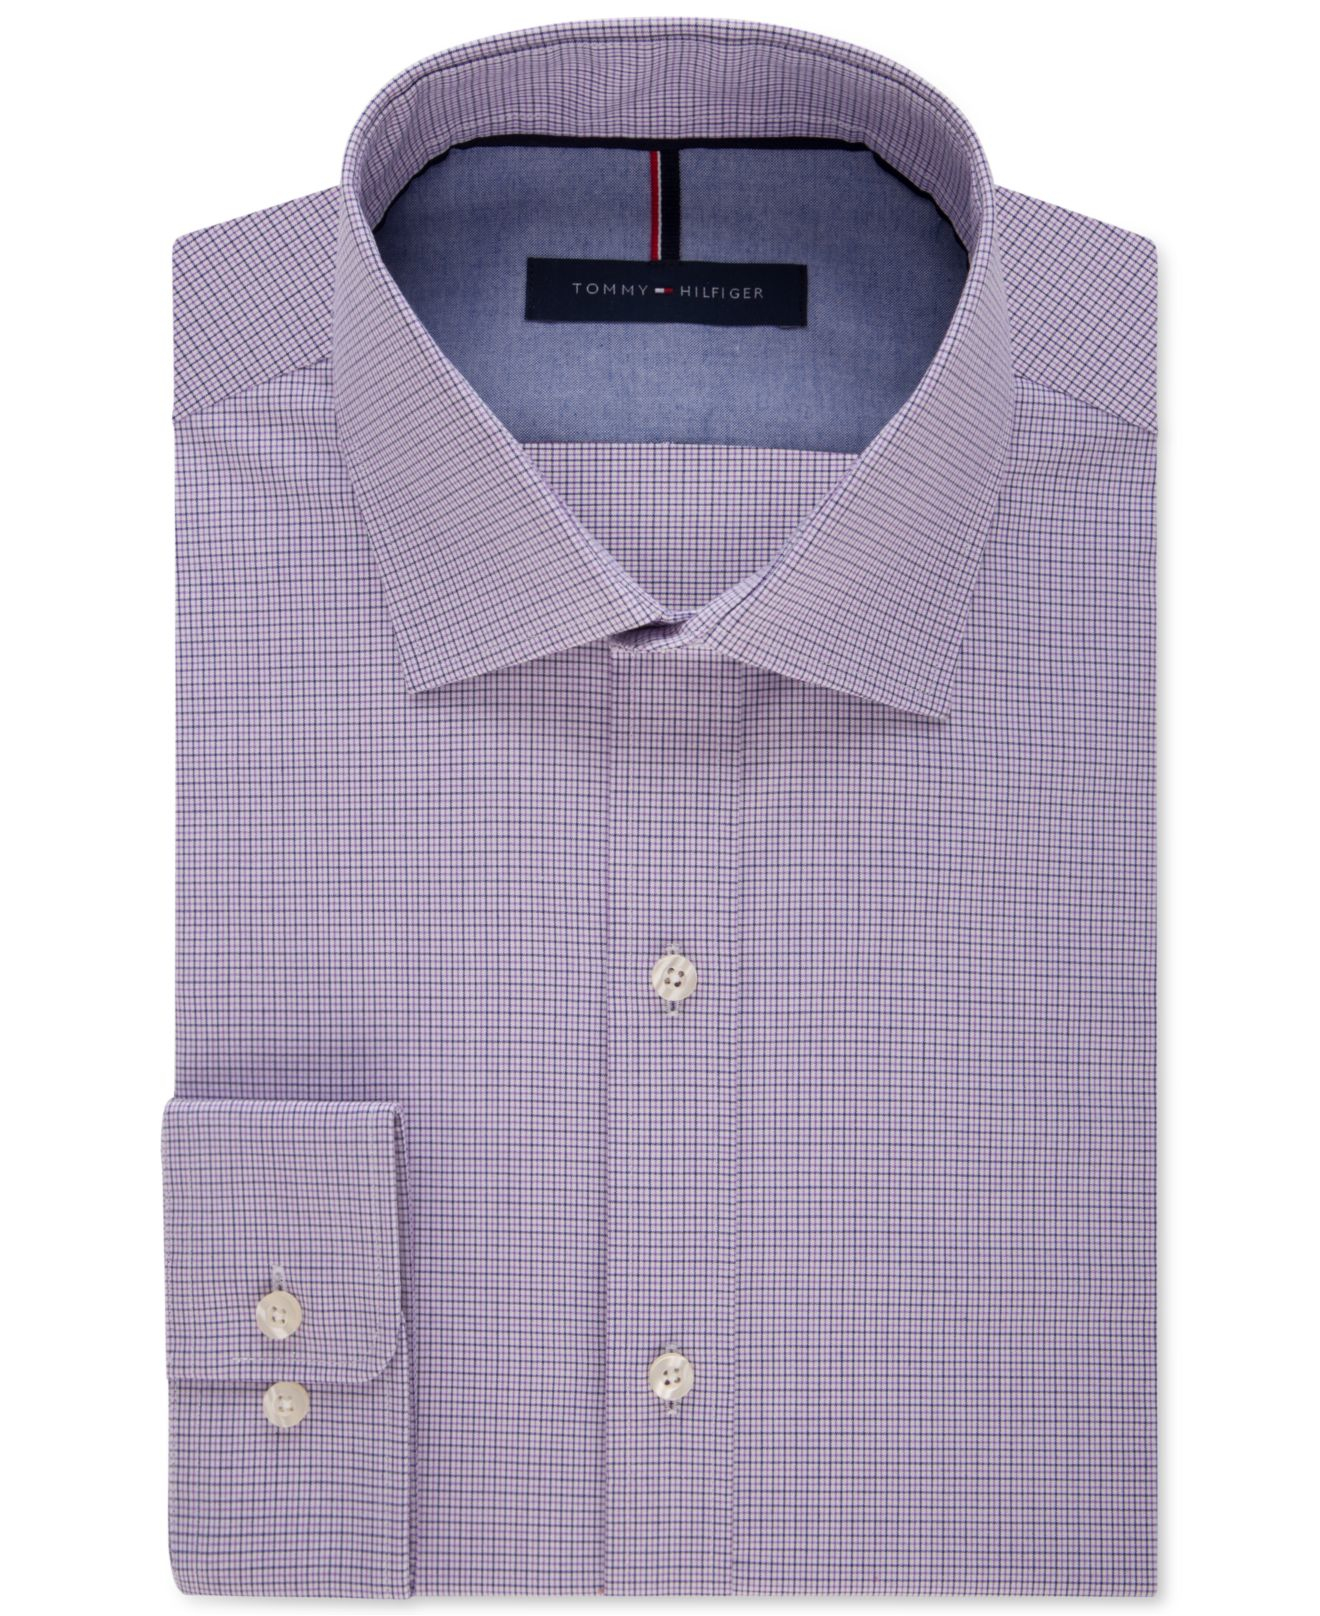 Tommy hilfiger men 39 s slim fit non iron check dress shirt for Slim fit non iron dress shirts